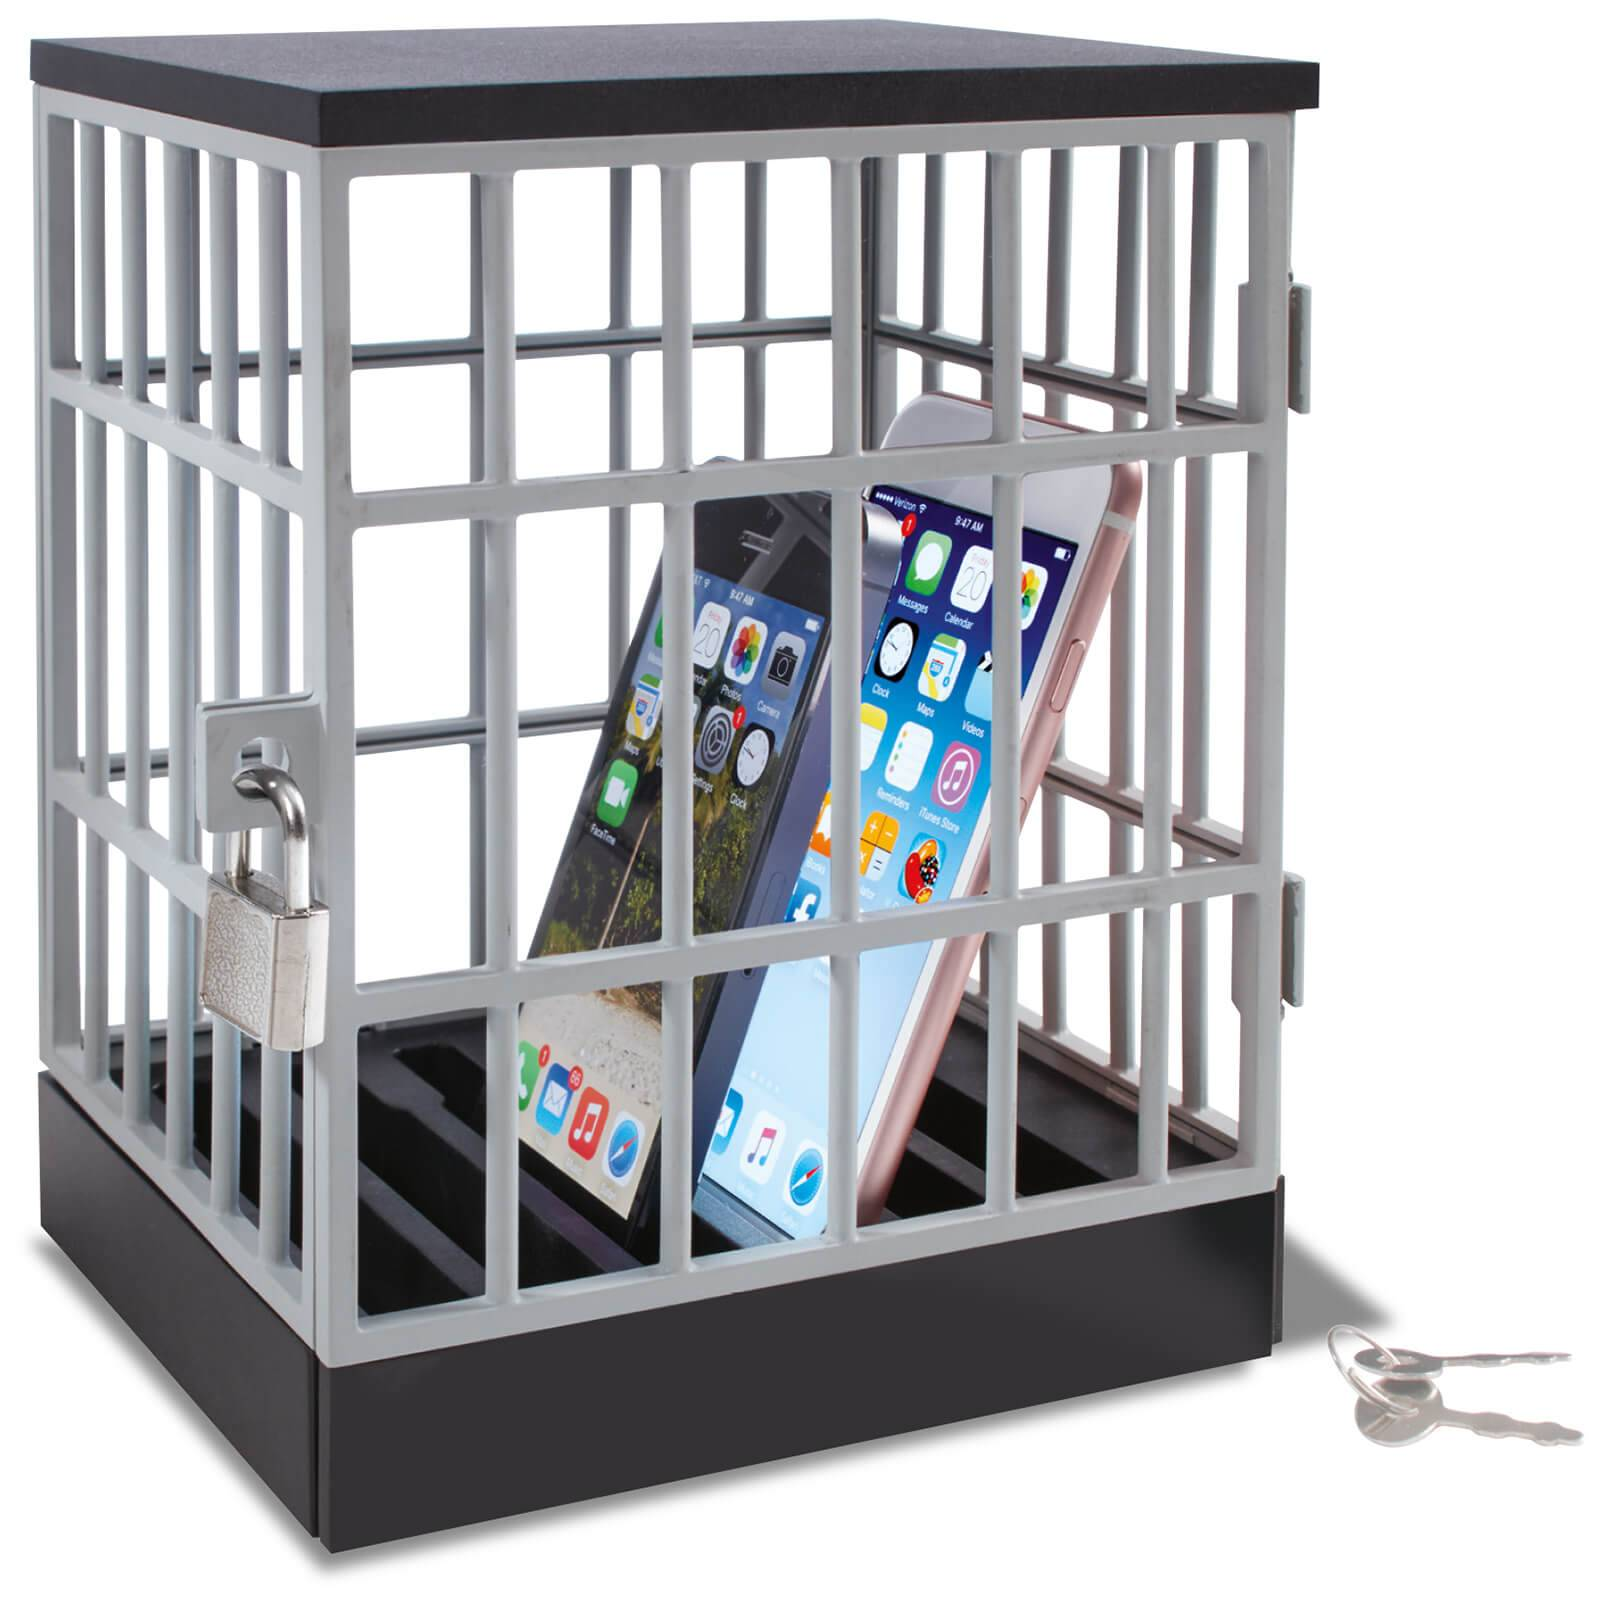 The Source Mobile Phone Jail-unisex